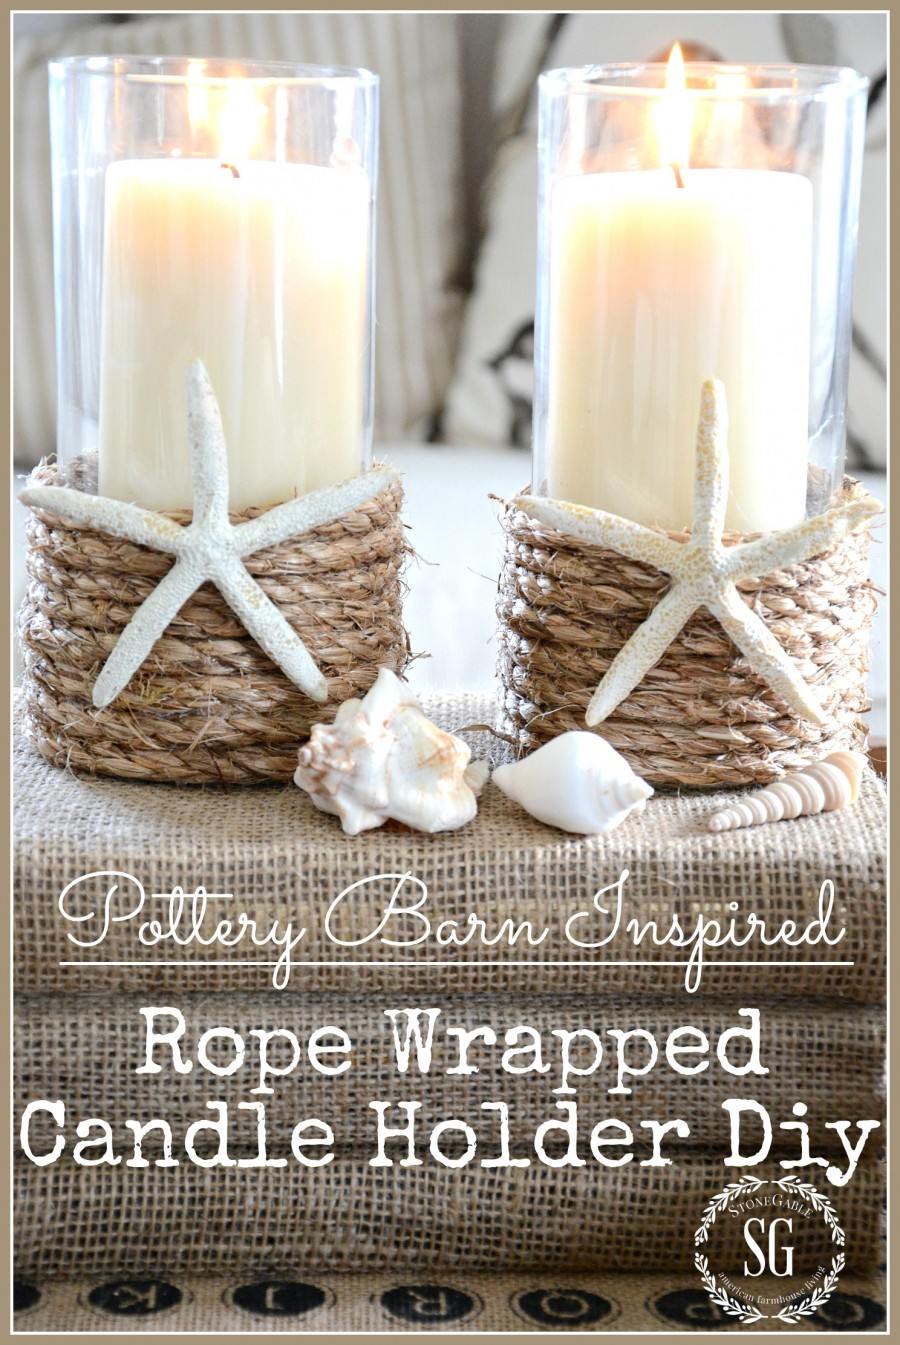 Pottery barn inspired rope wrapped candle holder diy chic easy and so inexpensive stonegableblog com